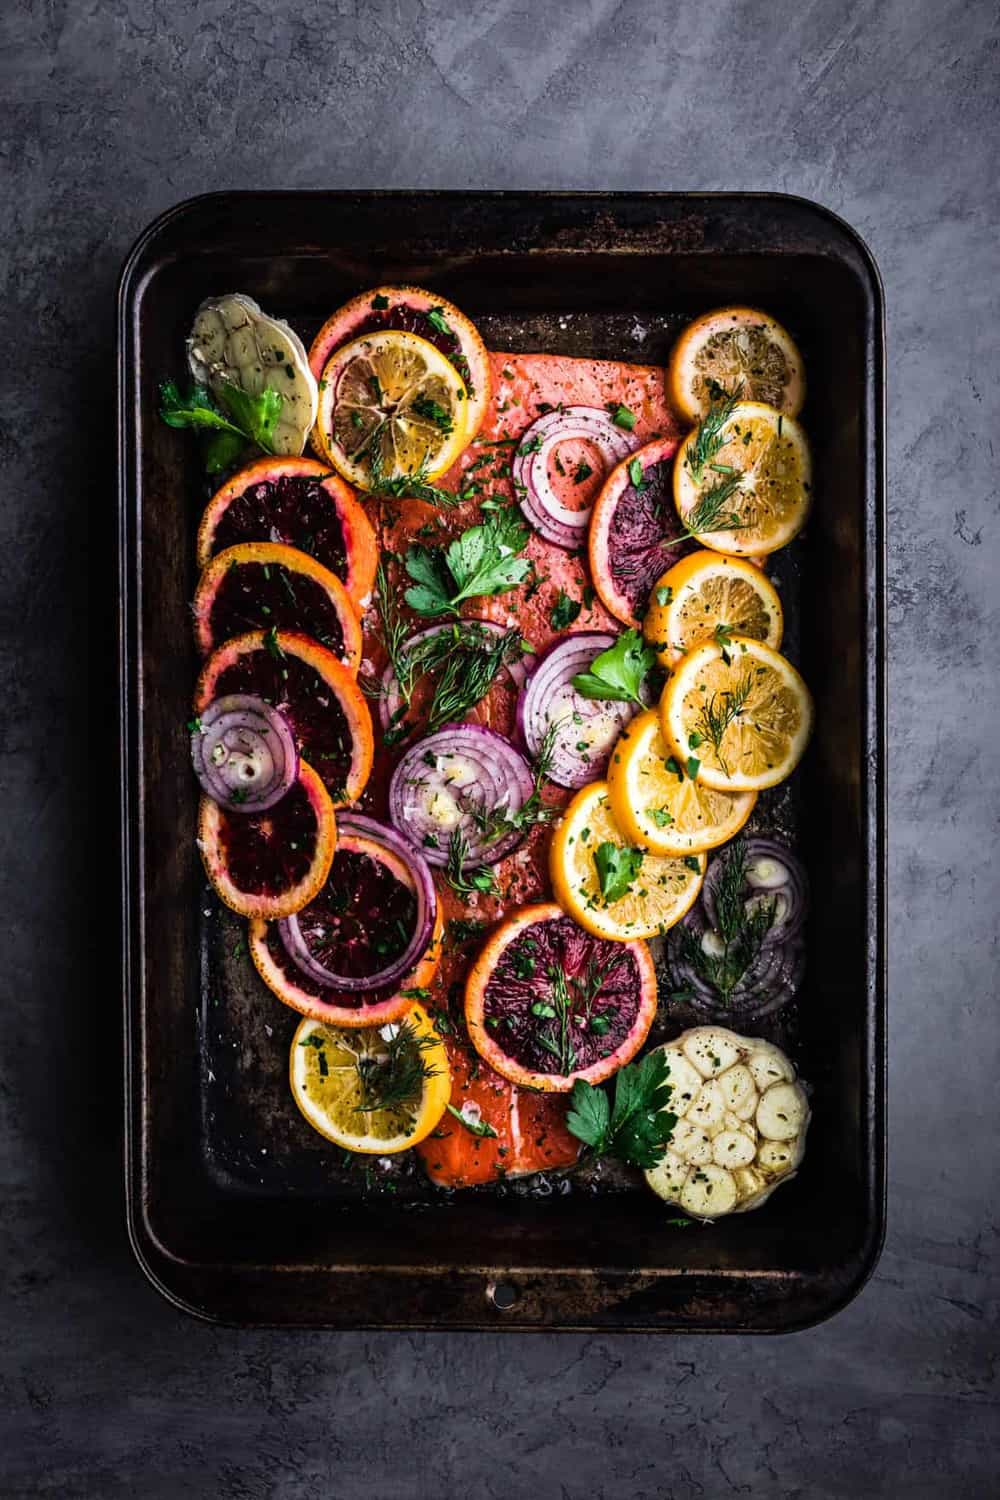 Fresh Citrus and Herb Roasted Salmon. Pre-oven with blood oranges, lemons, red onions, dill, parsley, salt and pepper on the salmon.